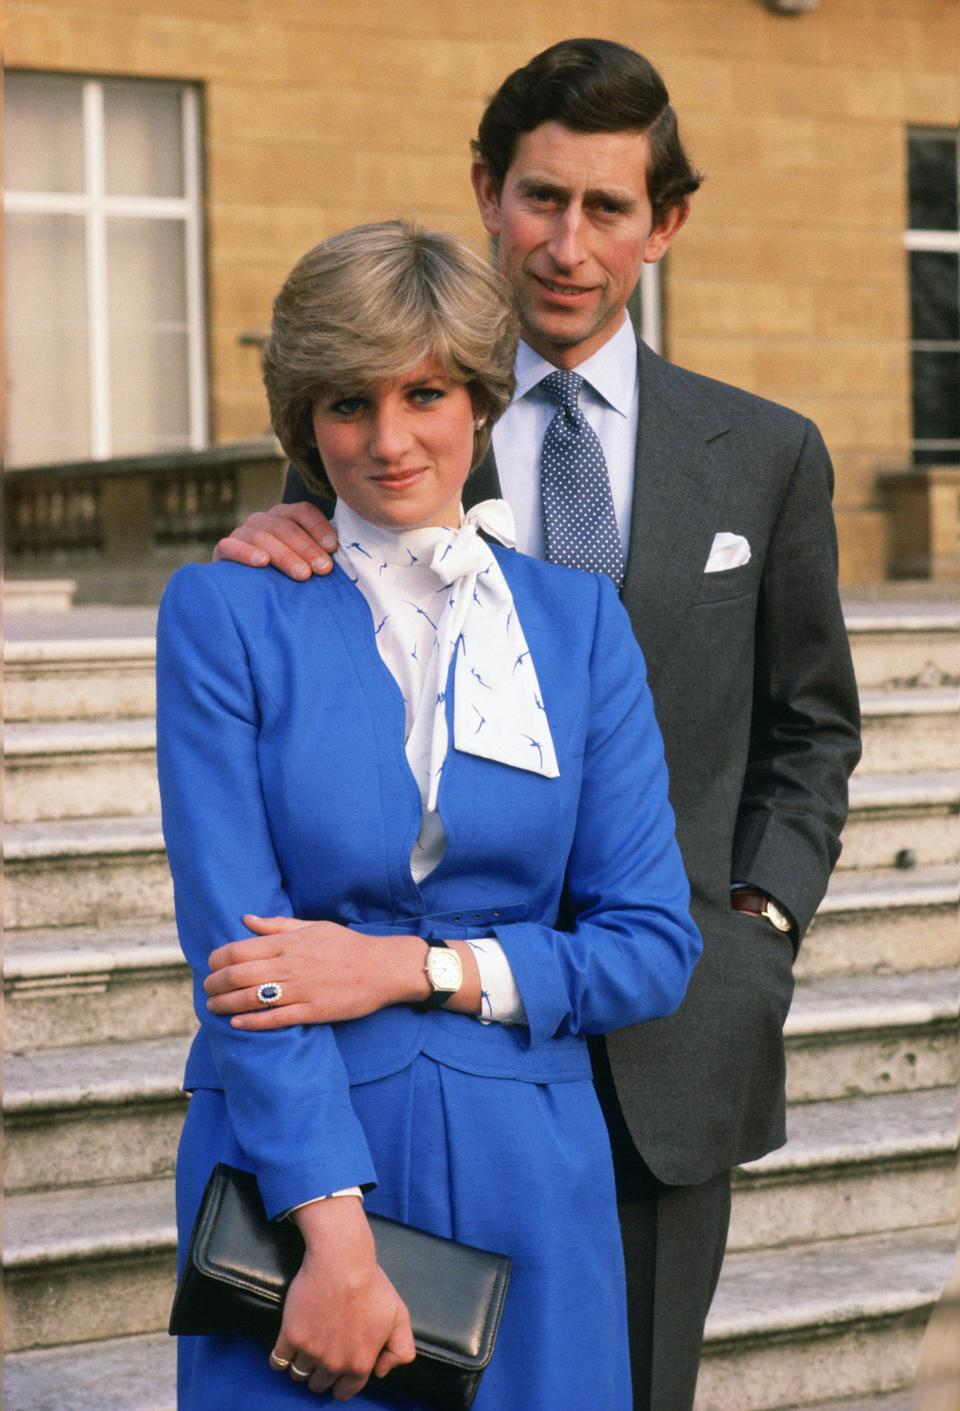 <p>Lady Diana Spencer and Prince Charles had been in a relationship for six months before he popped the question on 3 February 1981 in the nursery at Windsor Castle.<br>The Prince of Wales proposed with the now-famous Garrard sapphire ring which reportedly cost £28,000 at the time.<br><br>Their engagement was kept a secret until the 24th February but as soon as the nation was aware of their upcoming marriage, replicas of the engagement ring were quickly in circulation. <em>[Photo: Getty]</em> </p>